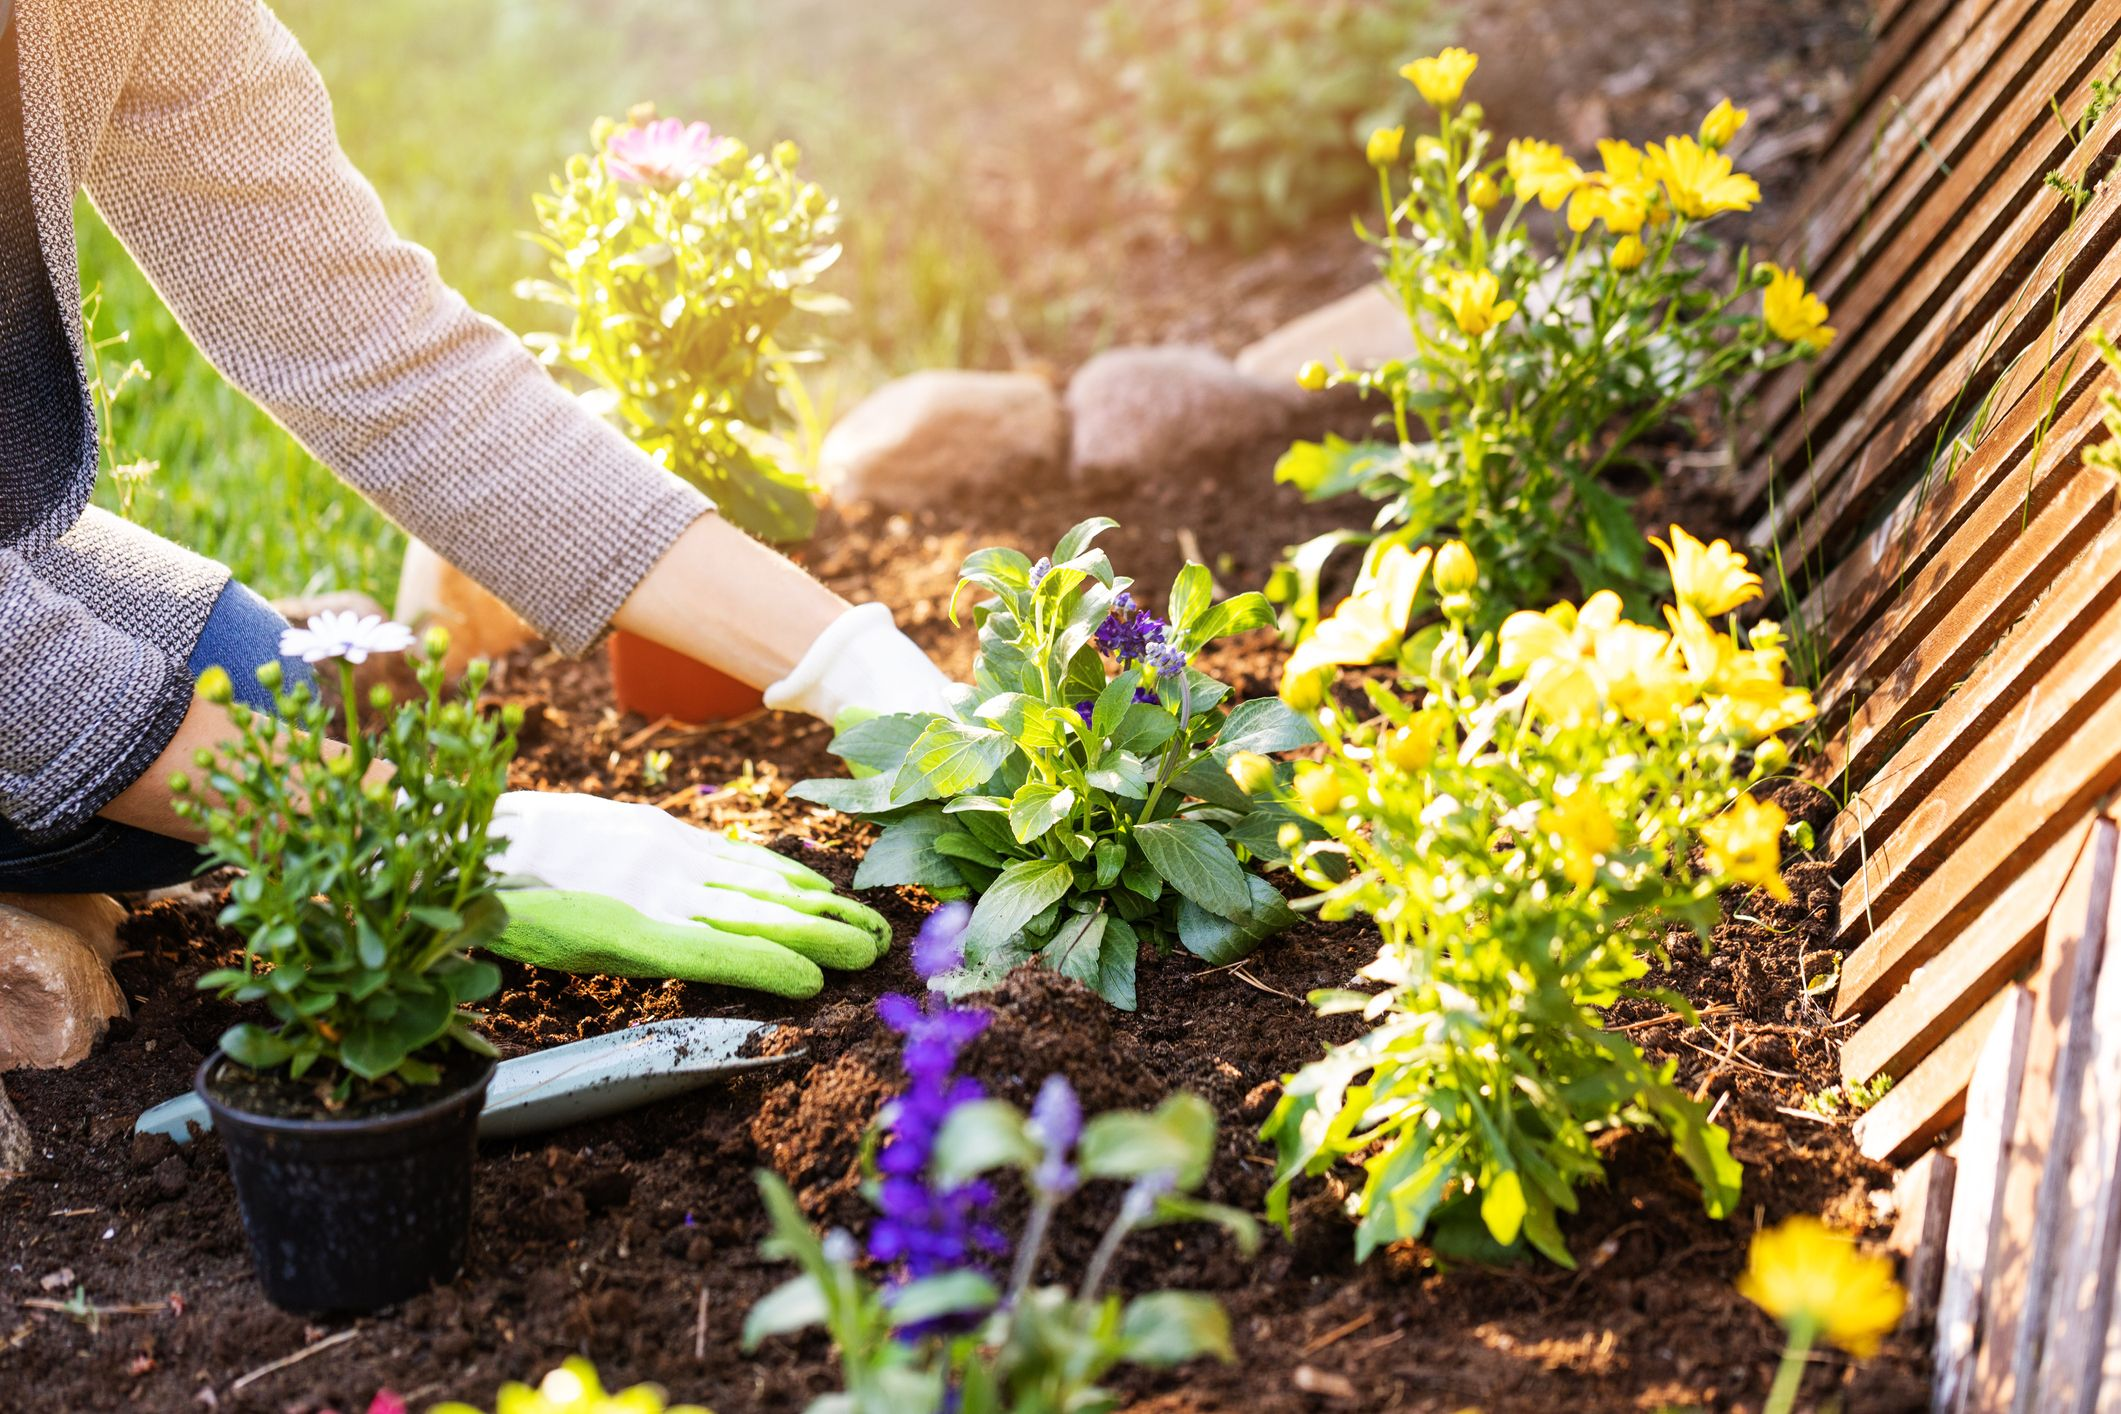 What to plant in your garden: a month-by-month guide